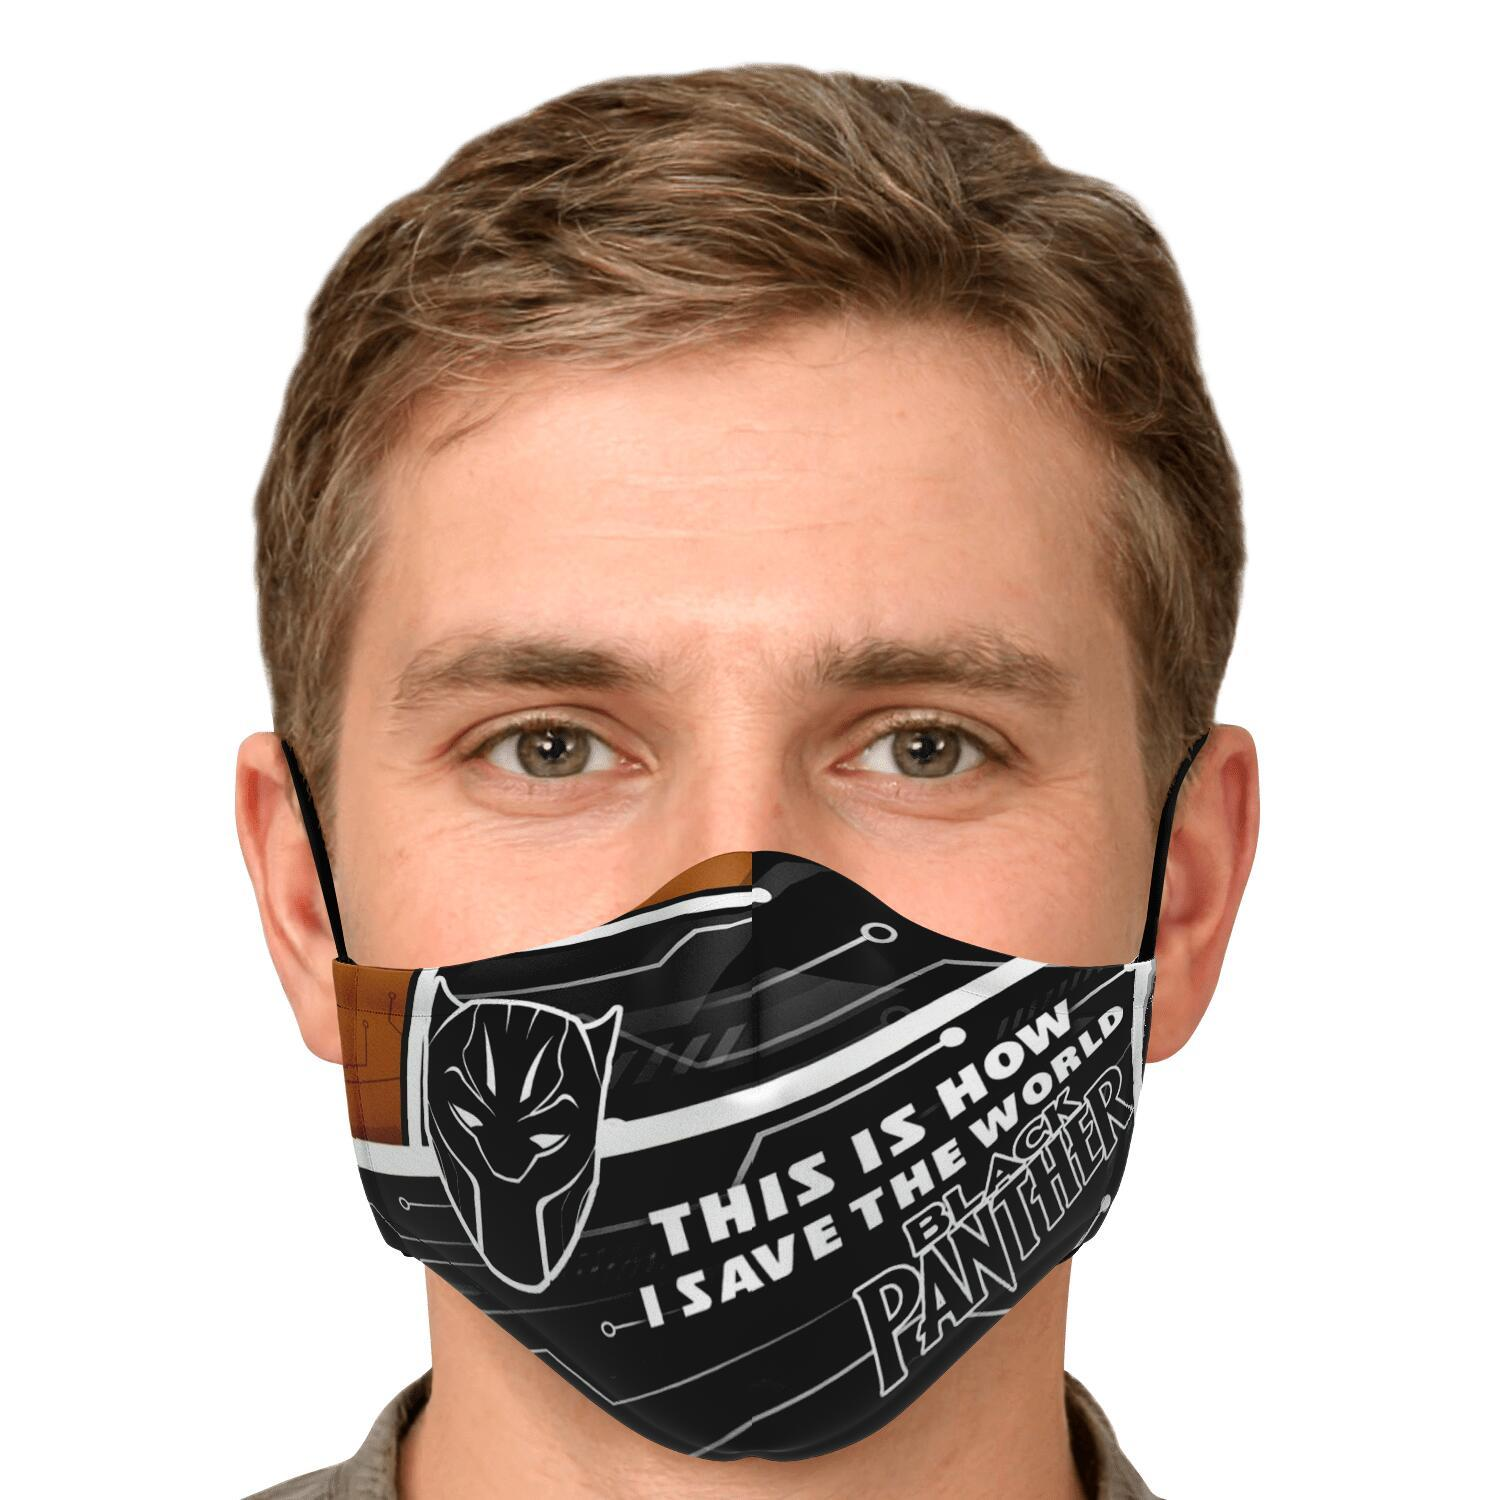 This Is How I Save The World Black Panther Face Masks 4